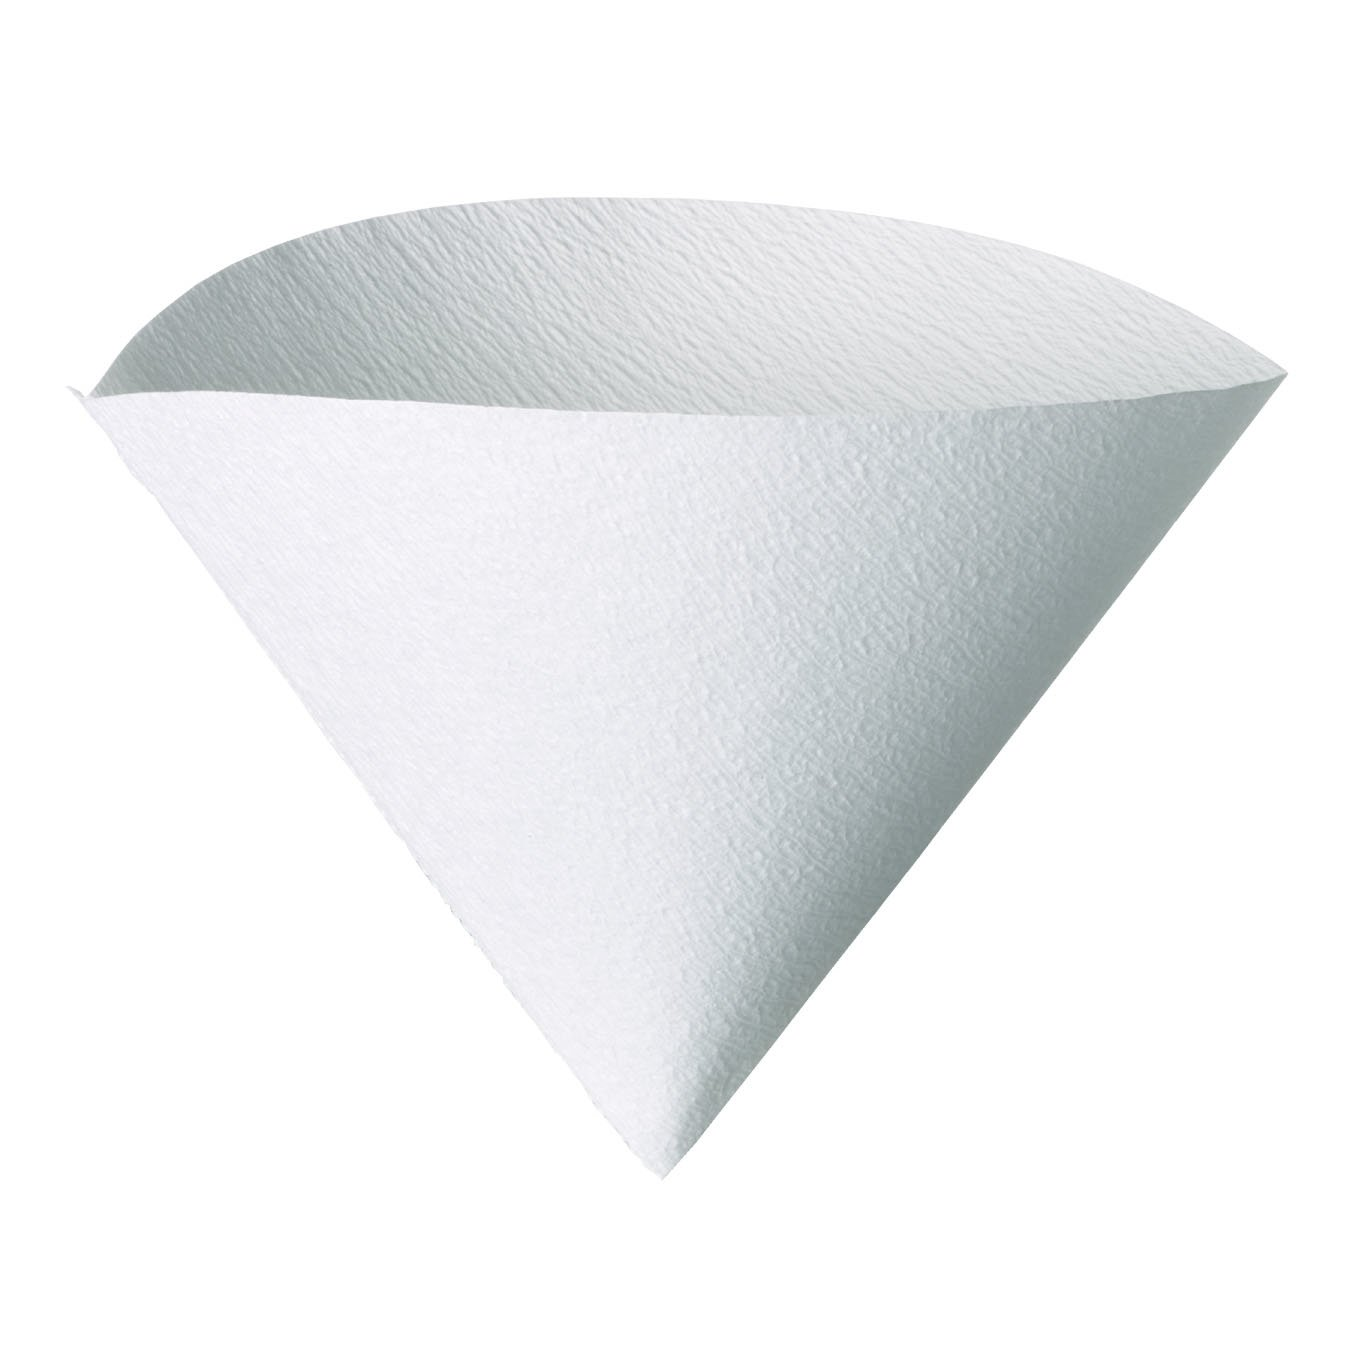 Hario V60 Paper Coffee Filters Size 02 40 Count Filter Vcf 100mk Natural Disposable Kitchen Dining